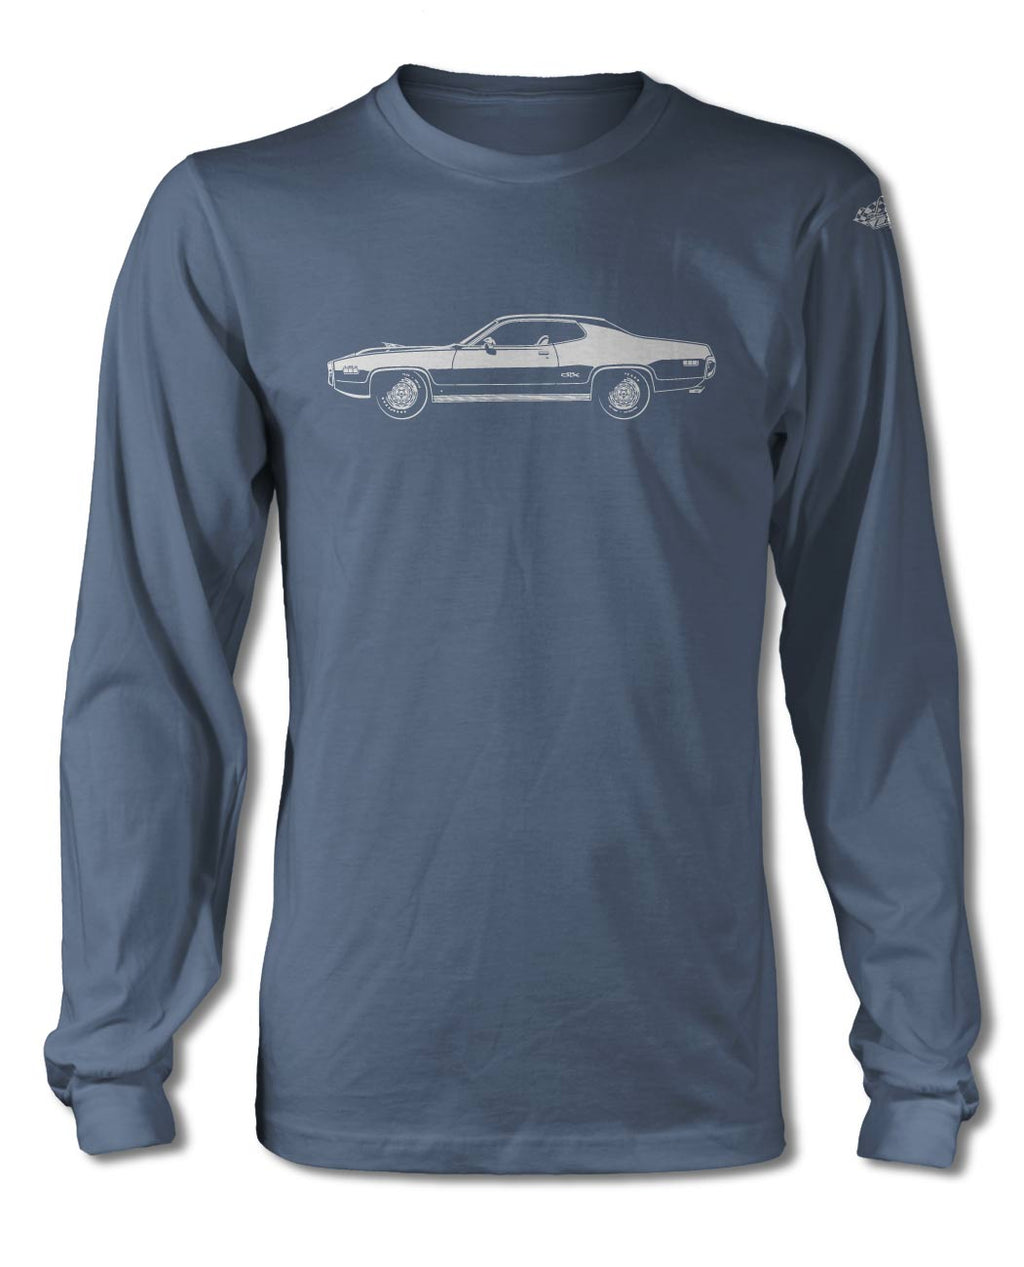 1971 Plymouth GTX 440-6 Coupe T-Shirt - Long Sleeves - Side View